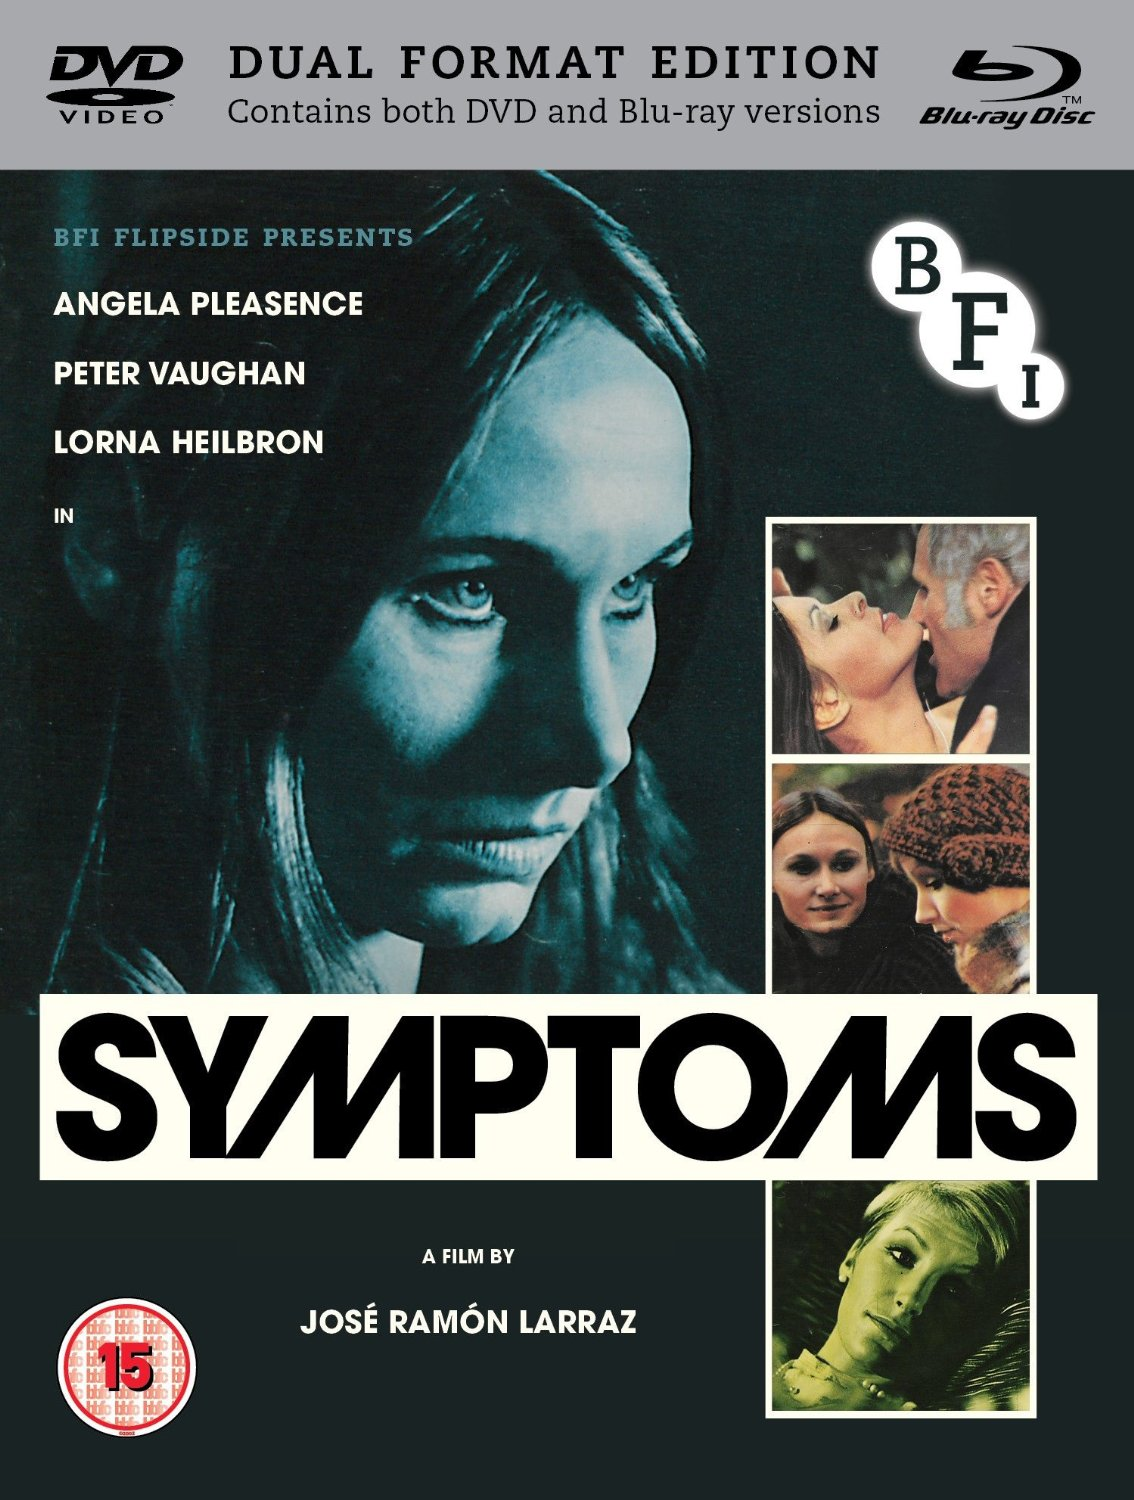 Symptoms Blu-ray review: a very British horror